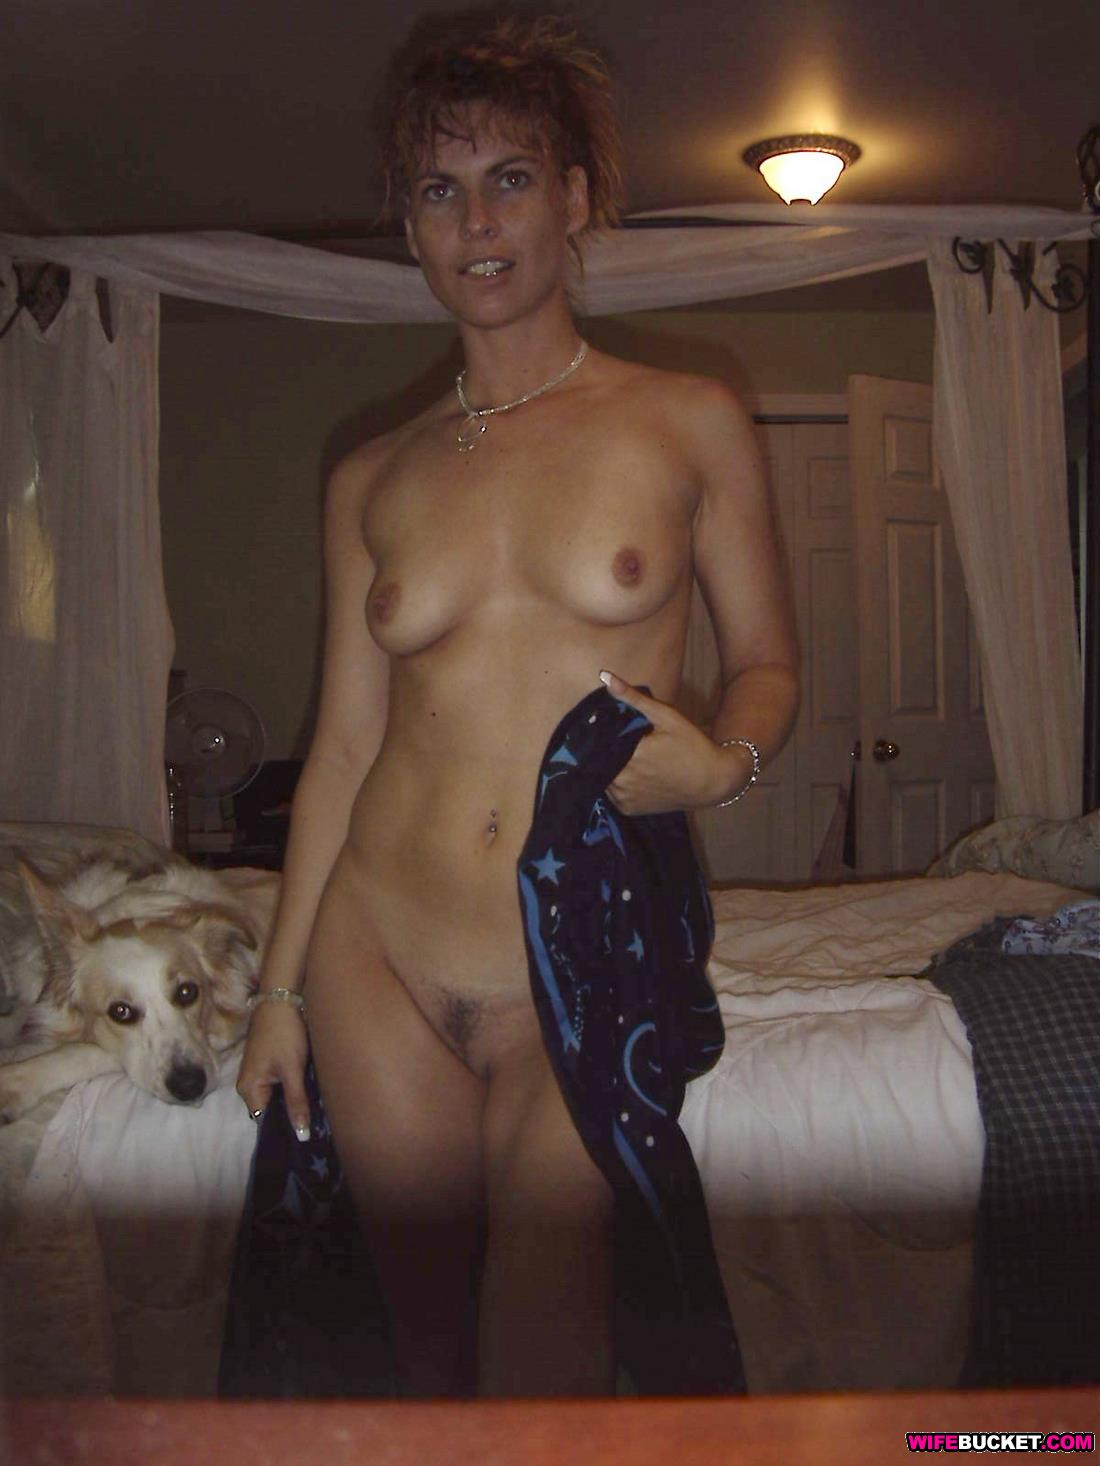 Wifebucket  First-Ever Nudes From A Hot Wife Over 40-8215